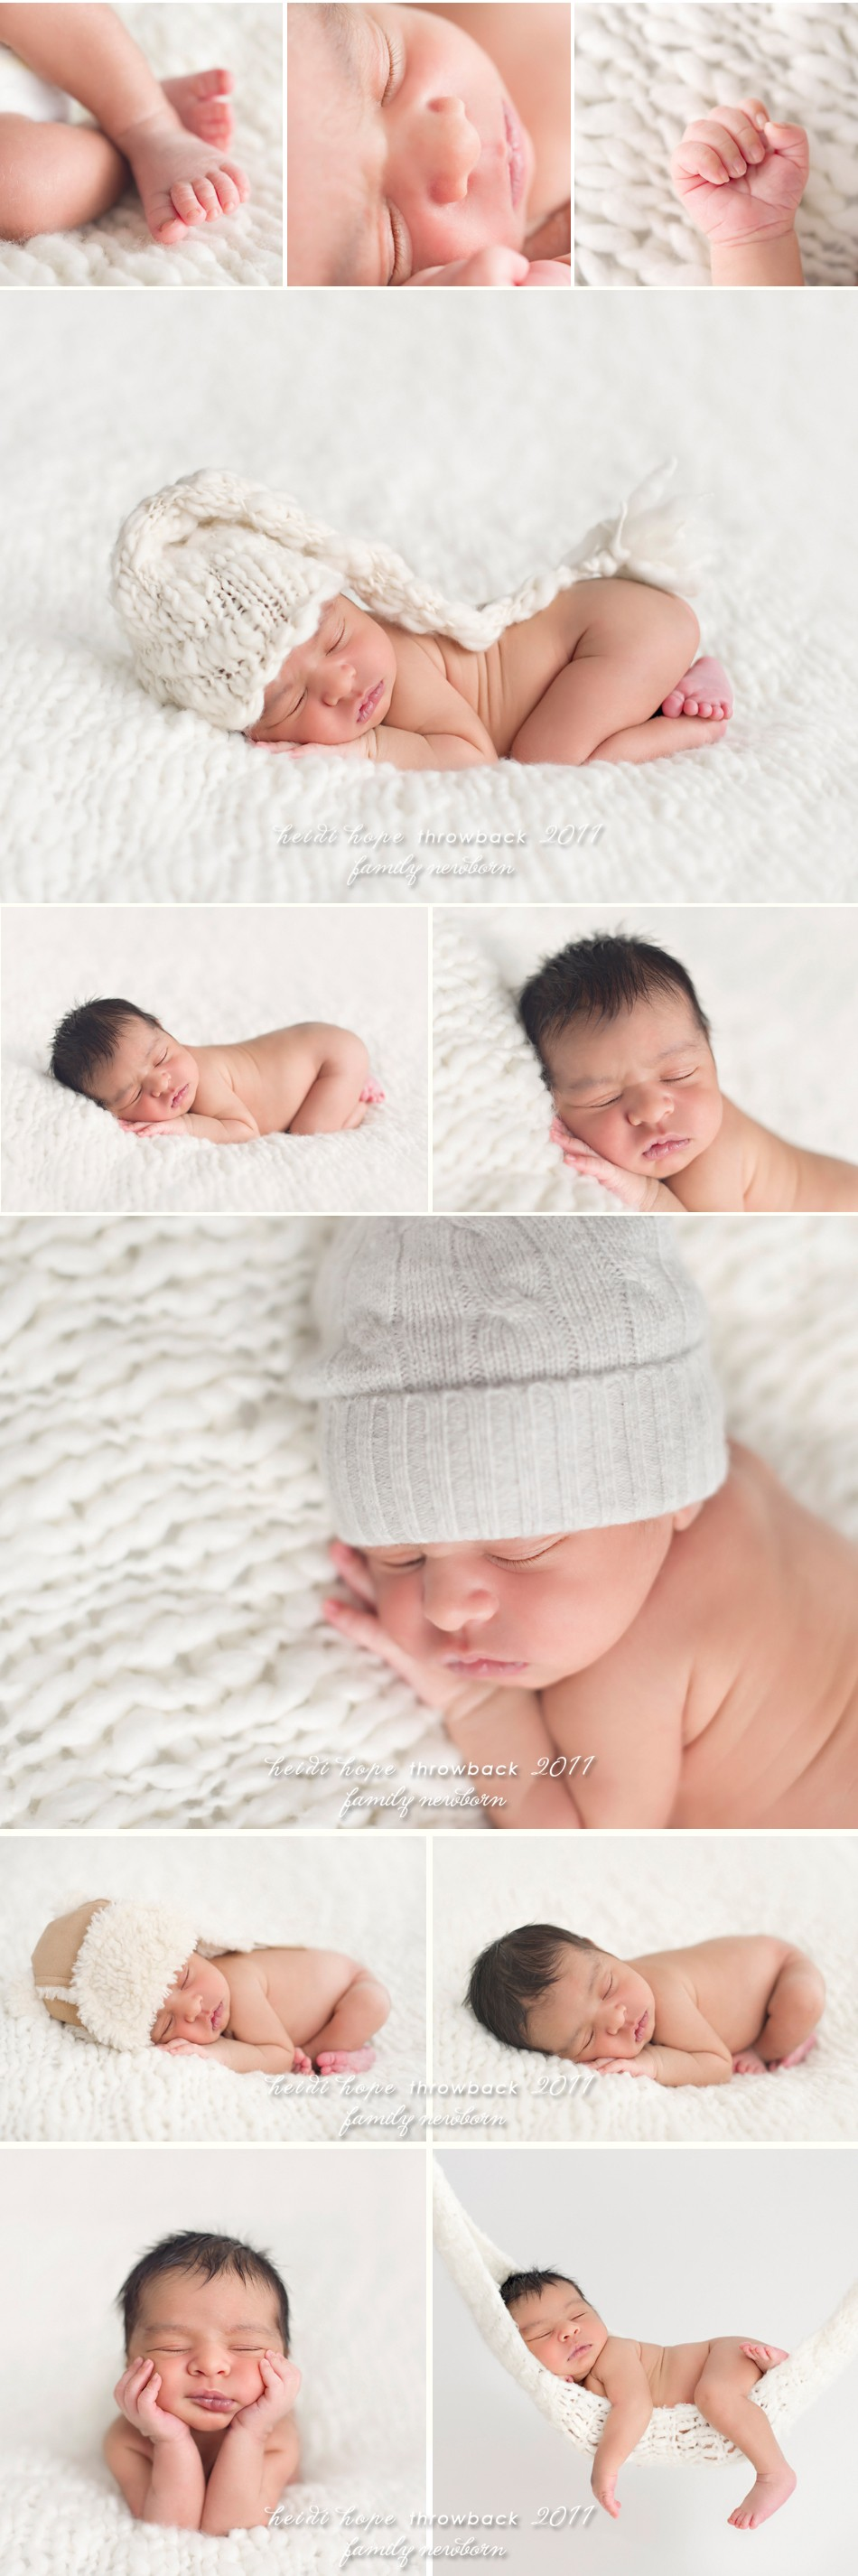 family-newborn-session-watermarked3